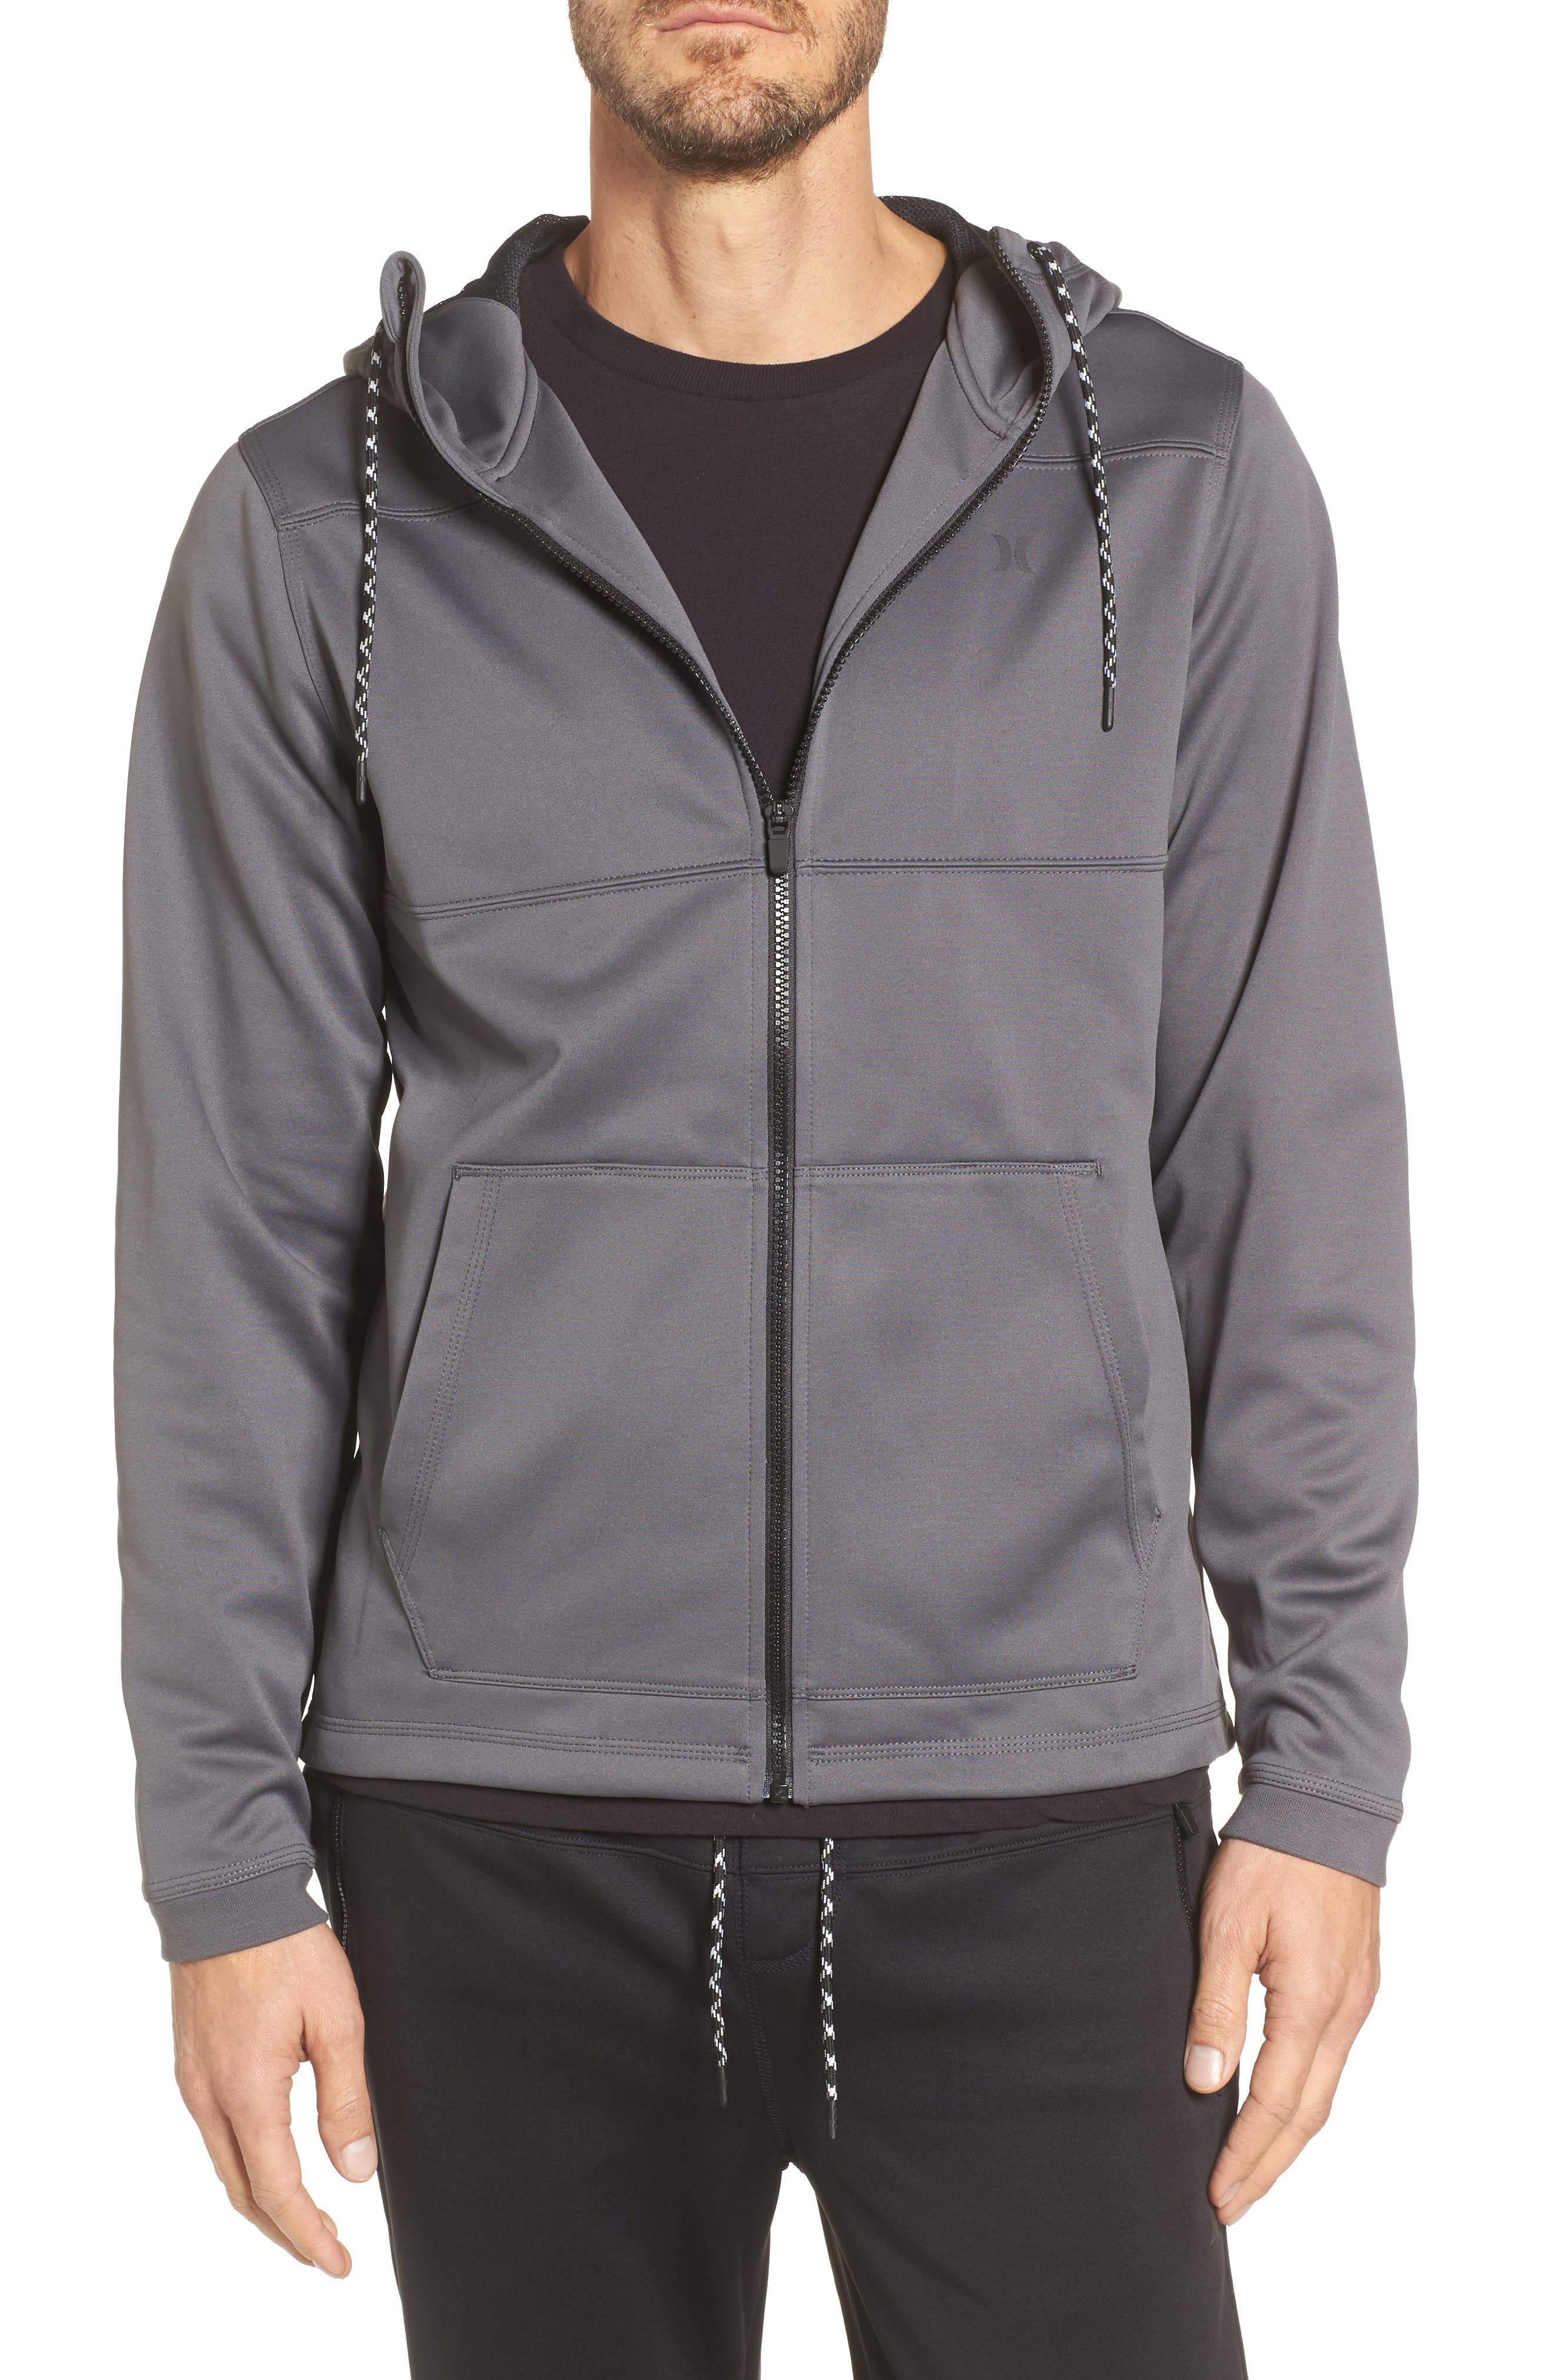 Therma Protect Zip Hoodie,                             Main thumbnail 2, color,